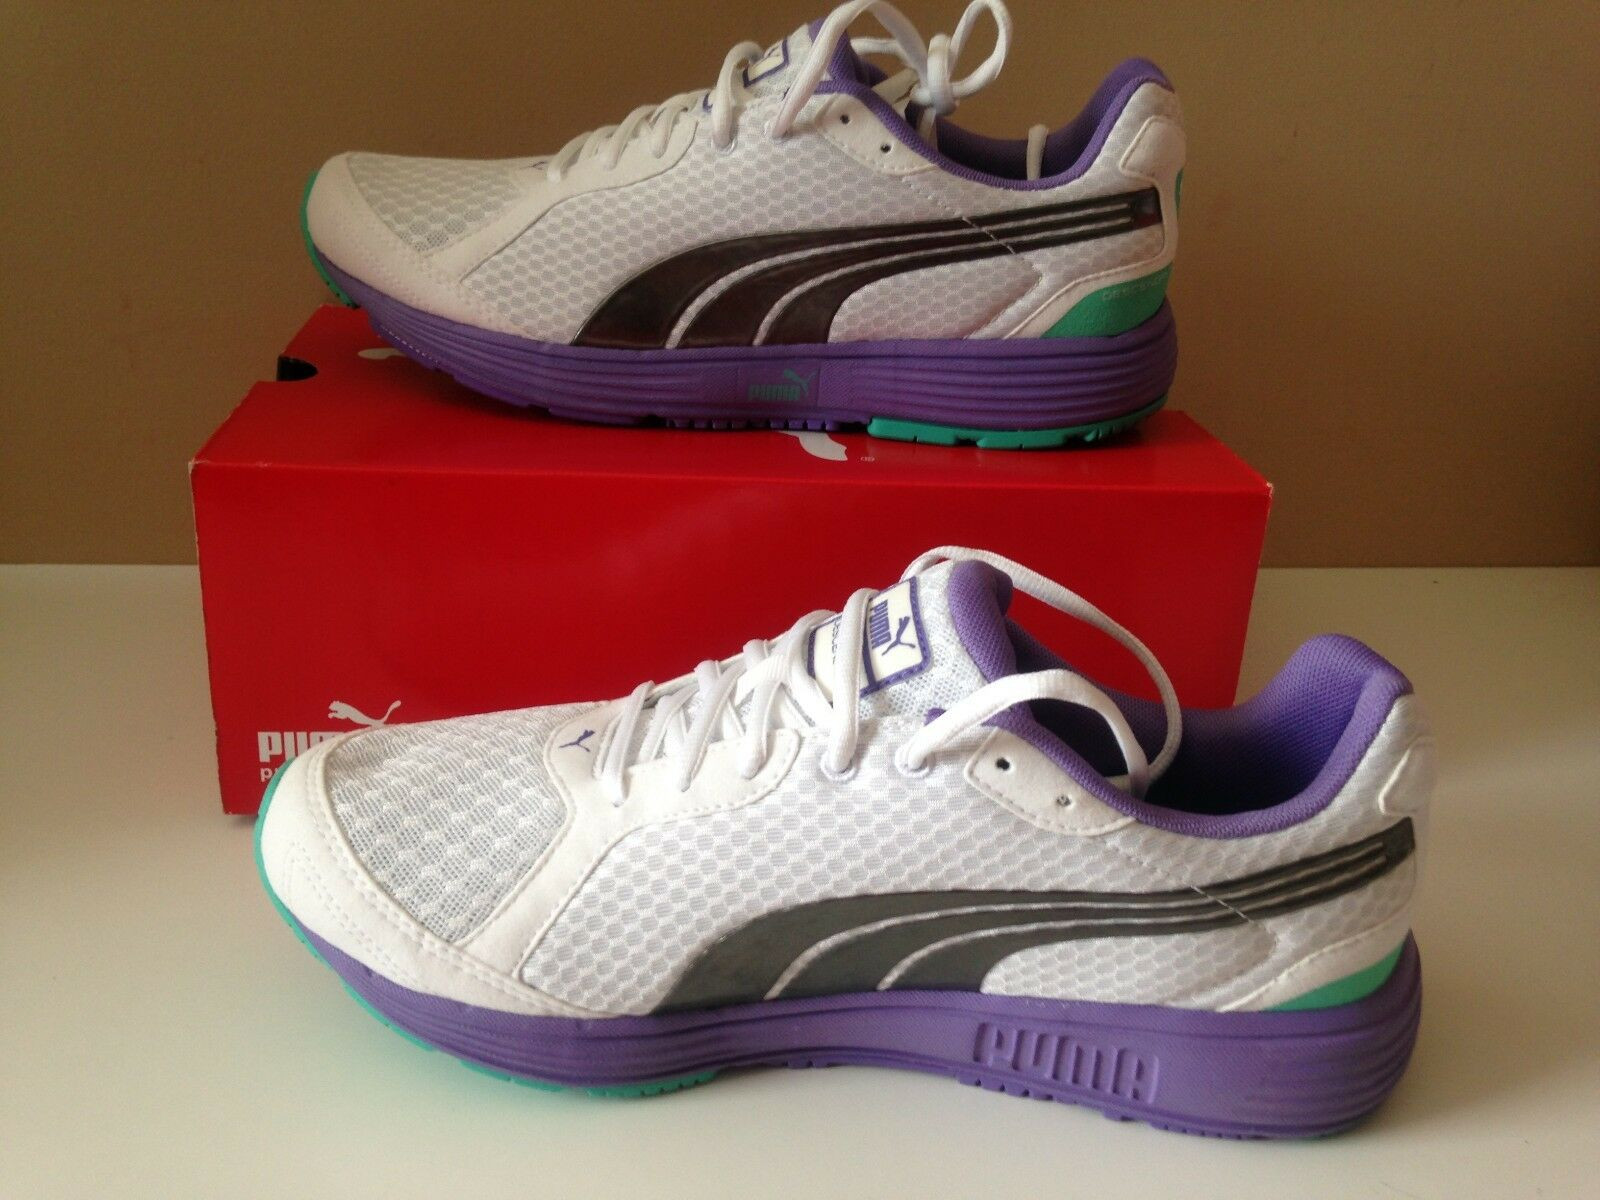 NIB PUMA DESCENDANT V1.5  Women's shoes 187288 02 CHOOSE SIZE RUNNING